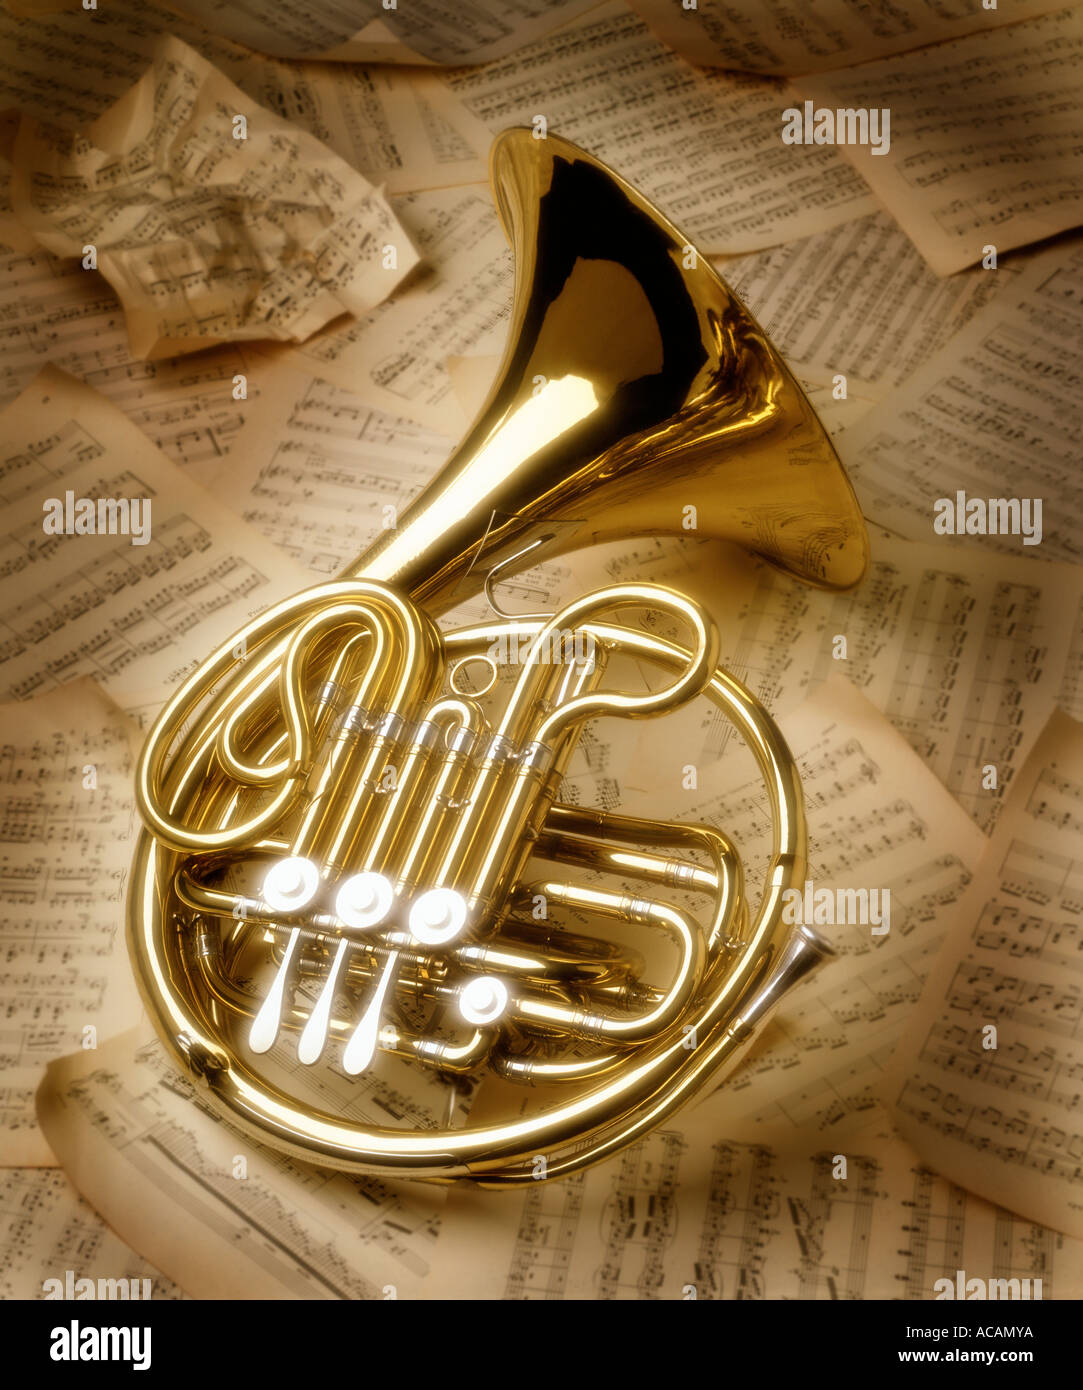 French Horn - Stock Image